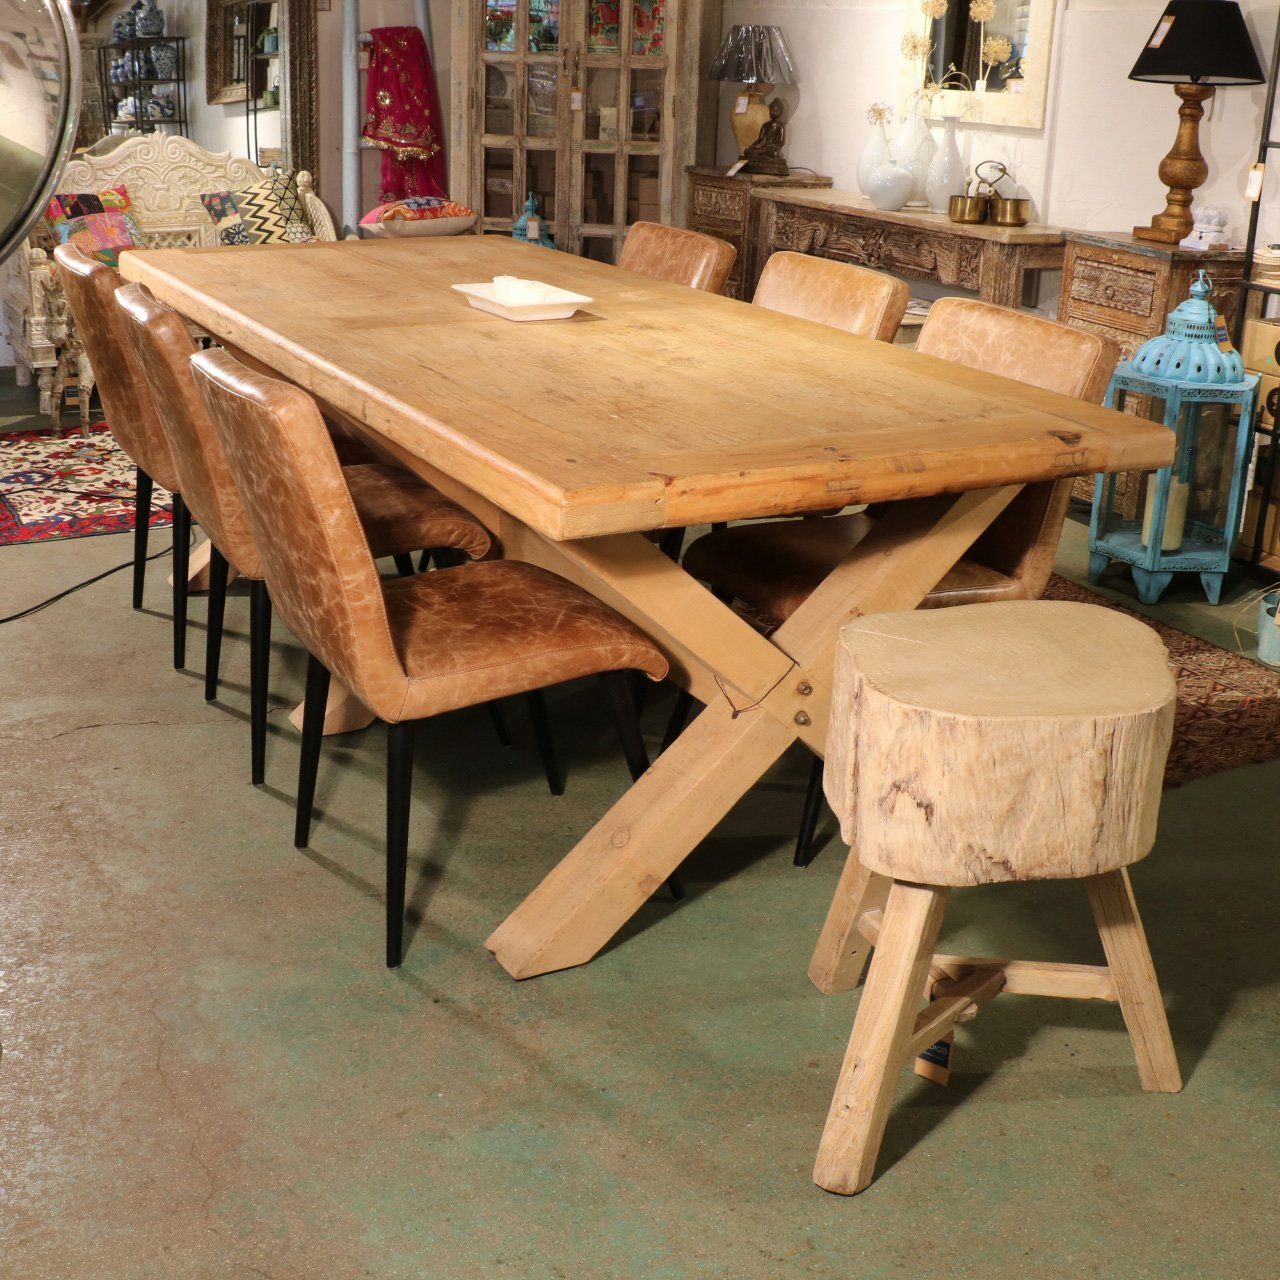 8 - 10 Seater Dining Table Made From Old Pine - X Leg Design | Indigo Oriental Antiques